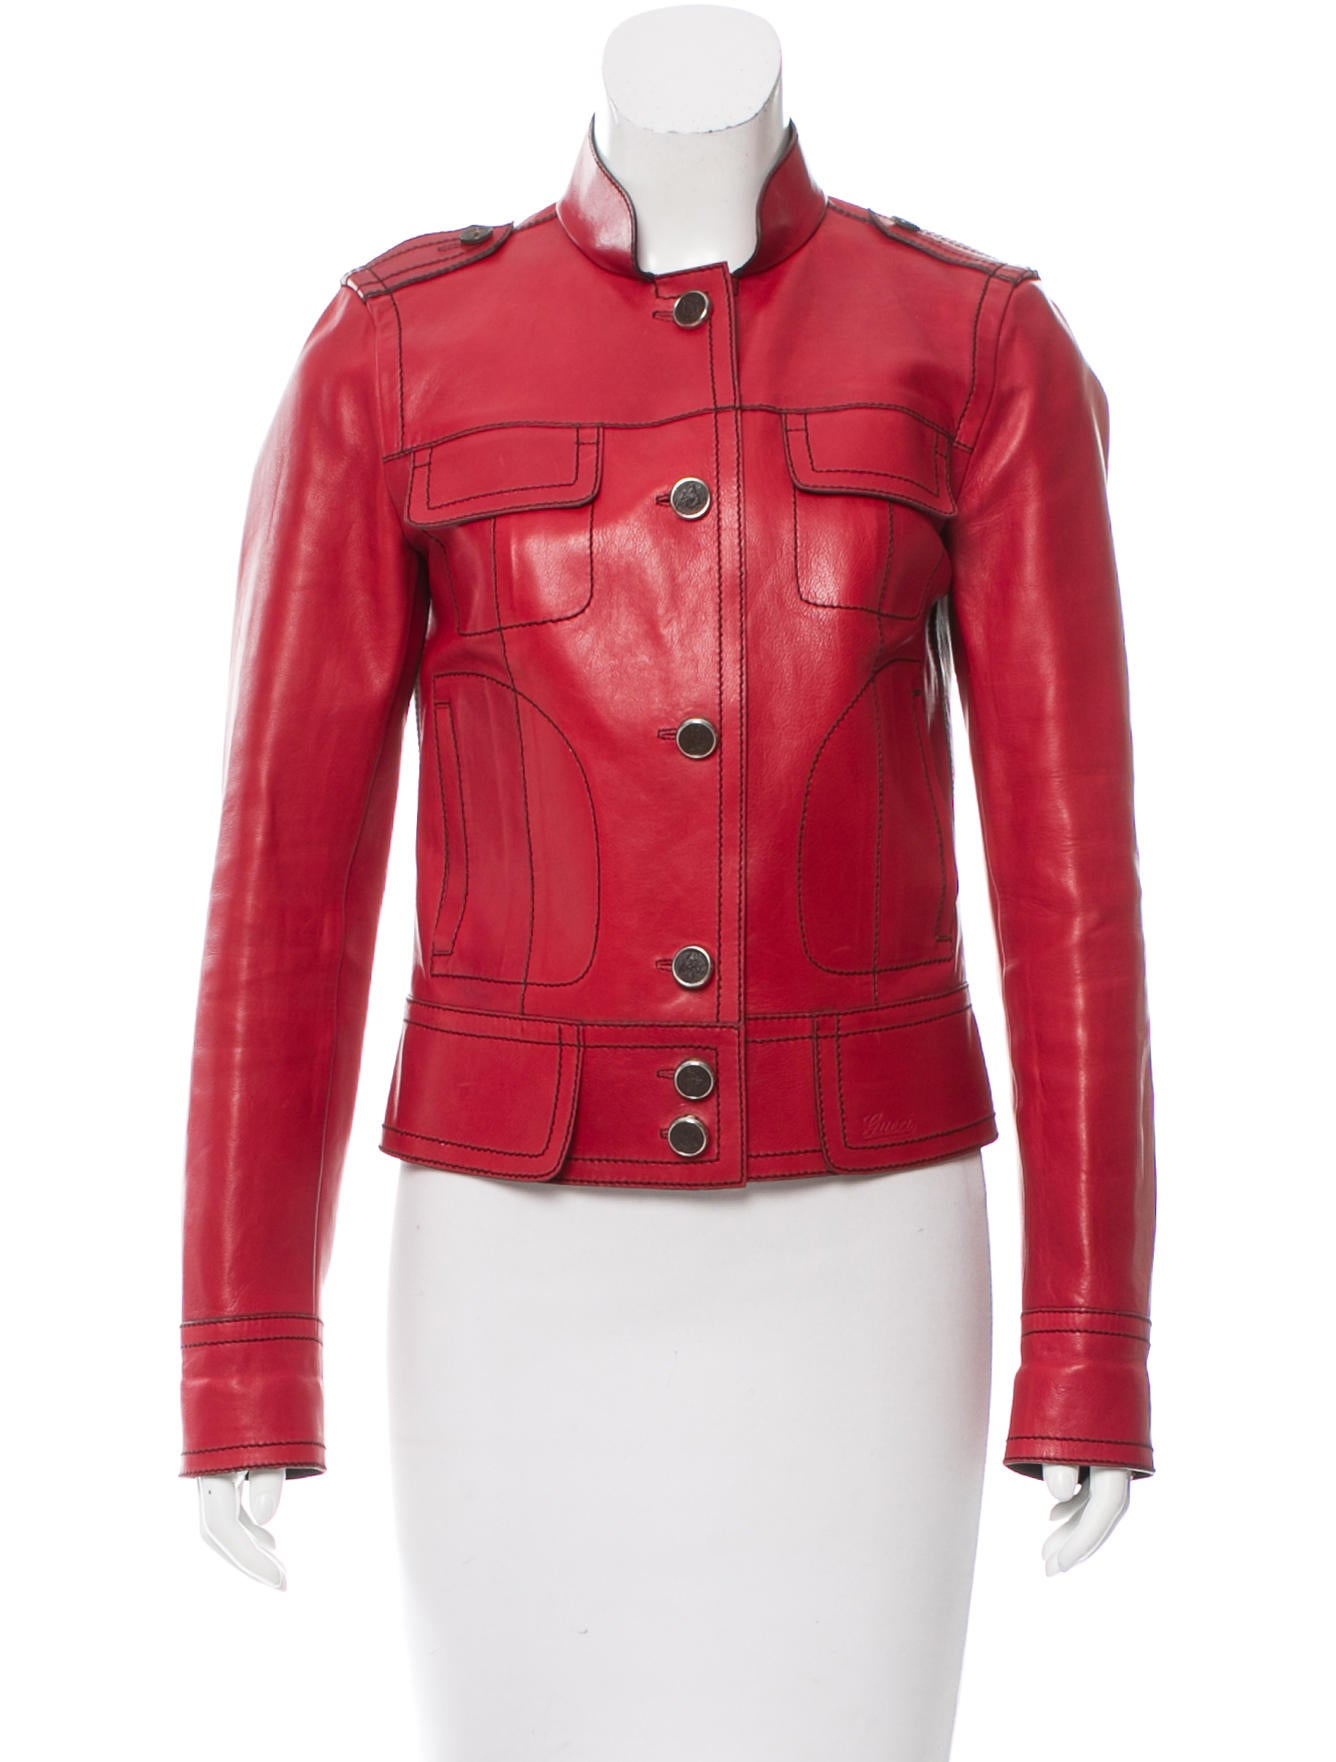 Gucci Casual Leather Jacket - Clothing - GUC135176 | The RealReal